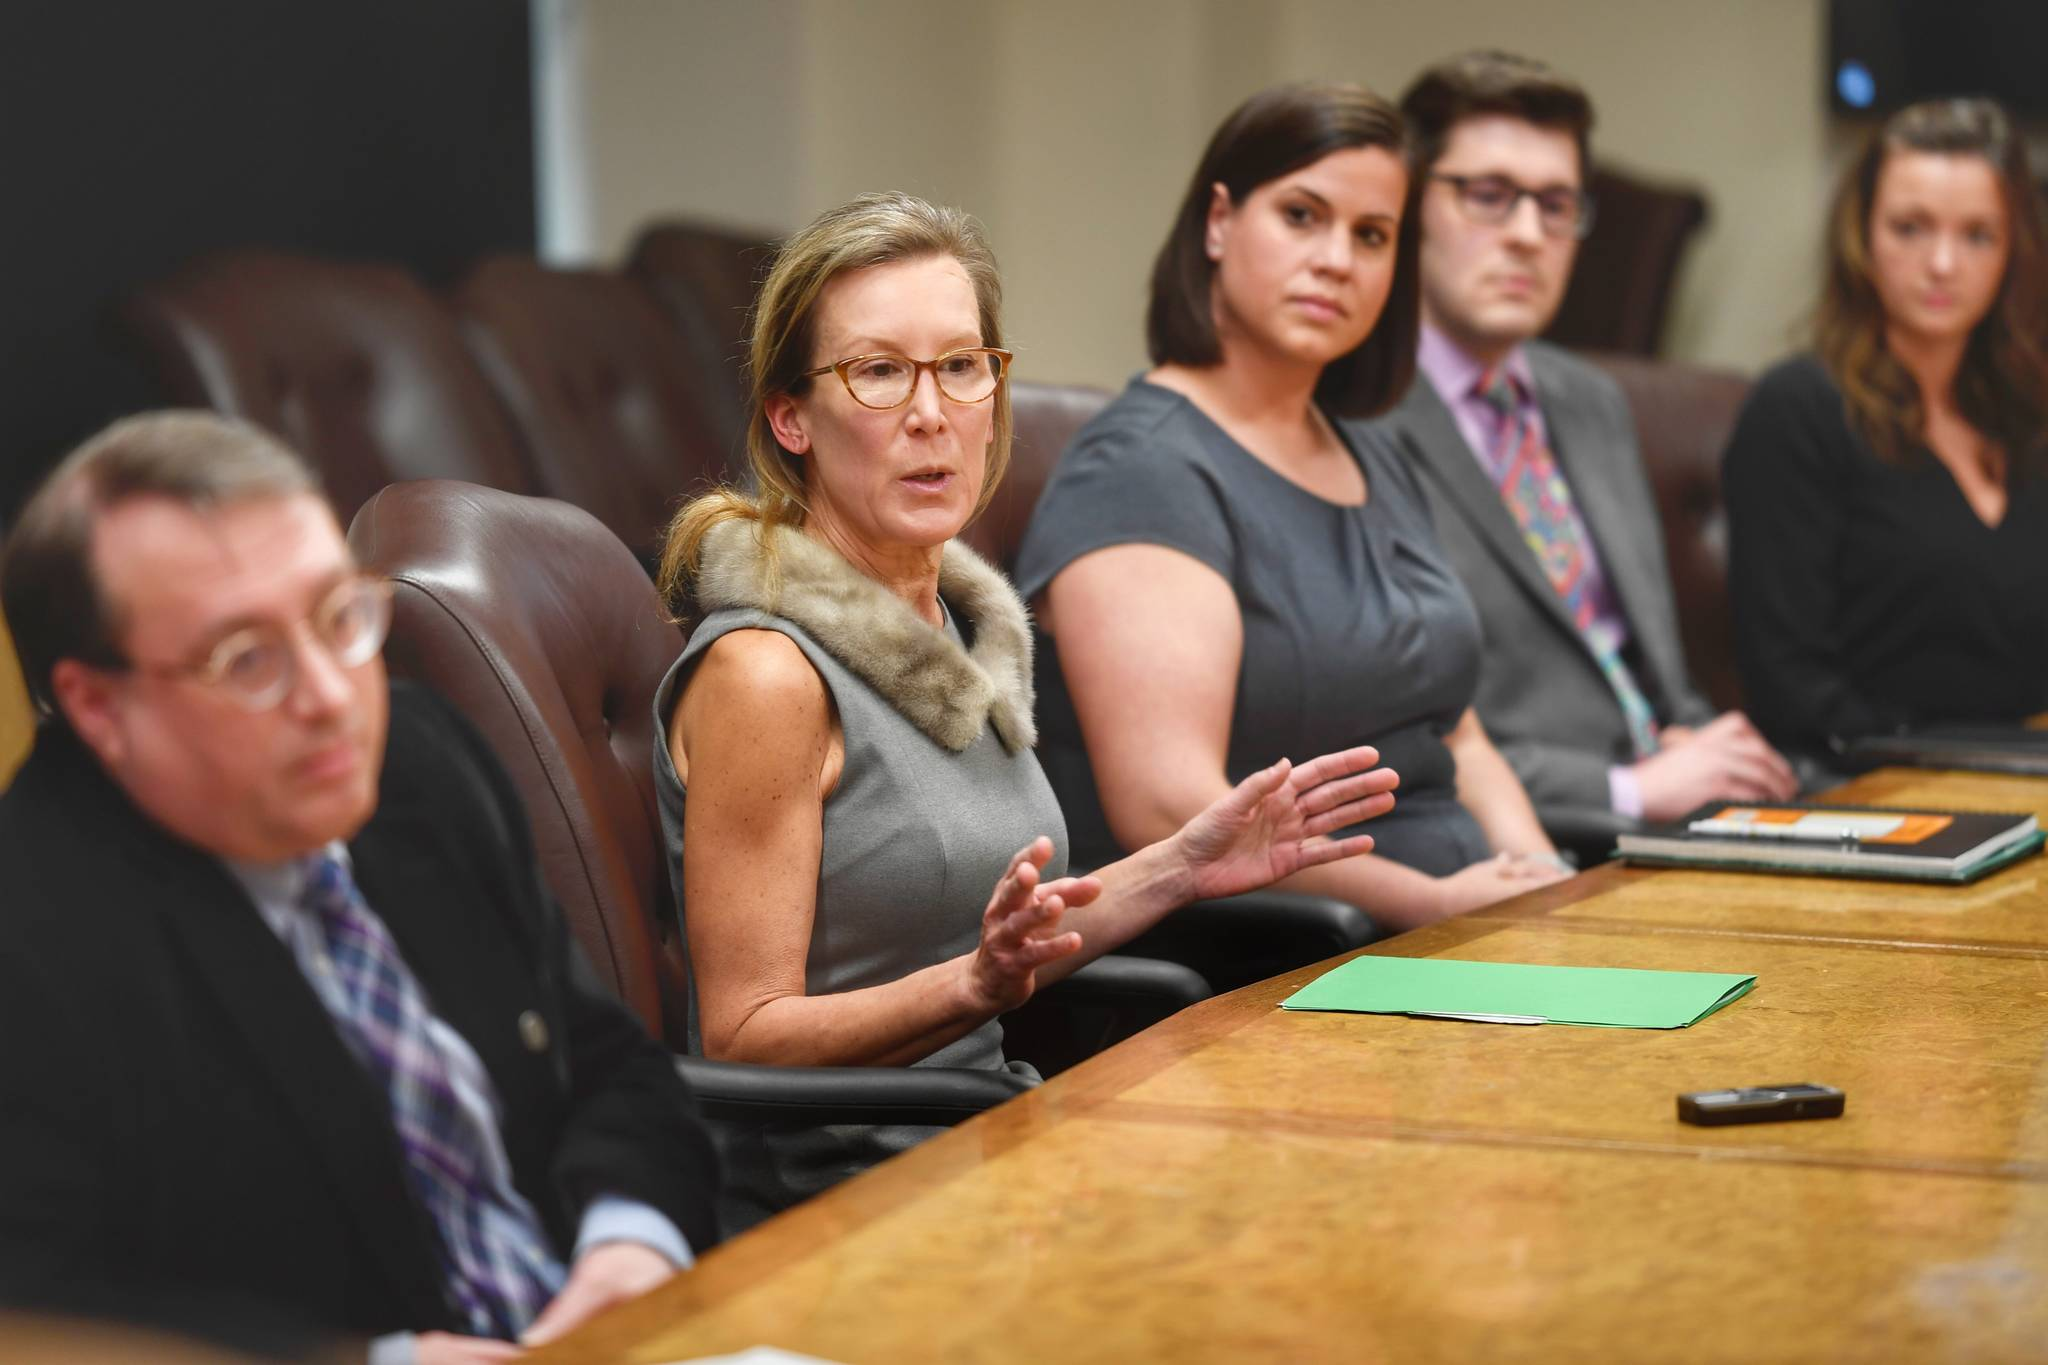 Office of Management and Budget Director Donna Arduin and members of her budget team takes time to explain Gov. Mike Dunleavy's state budget at the Capitol on Wednesday, Feb. 13, 2019. (Michael Penn | Juneau Empire)